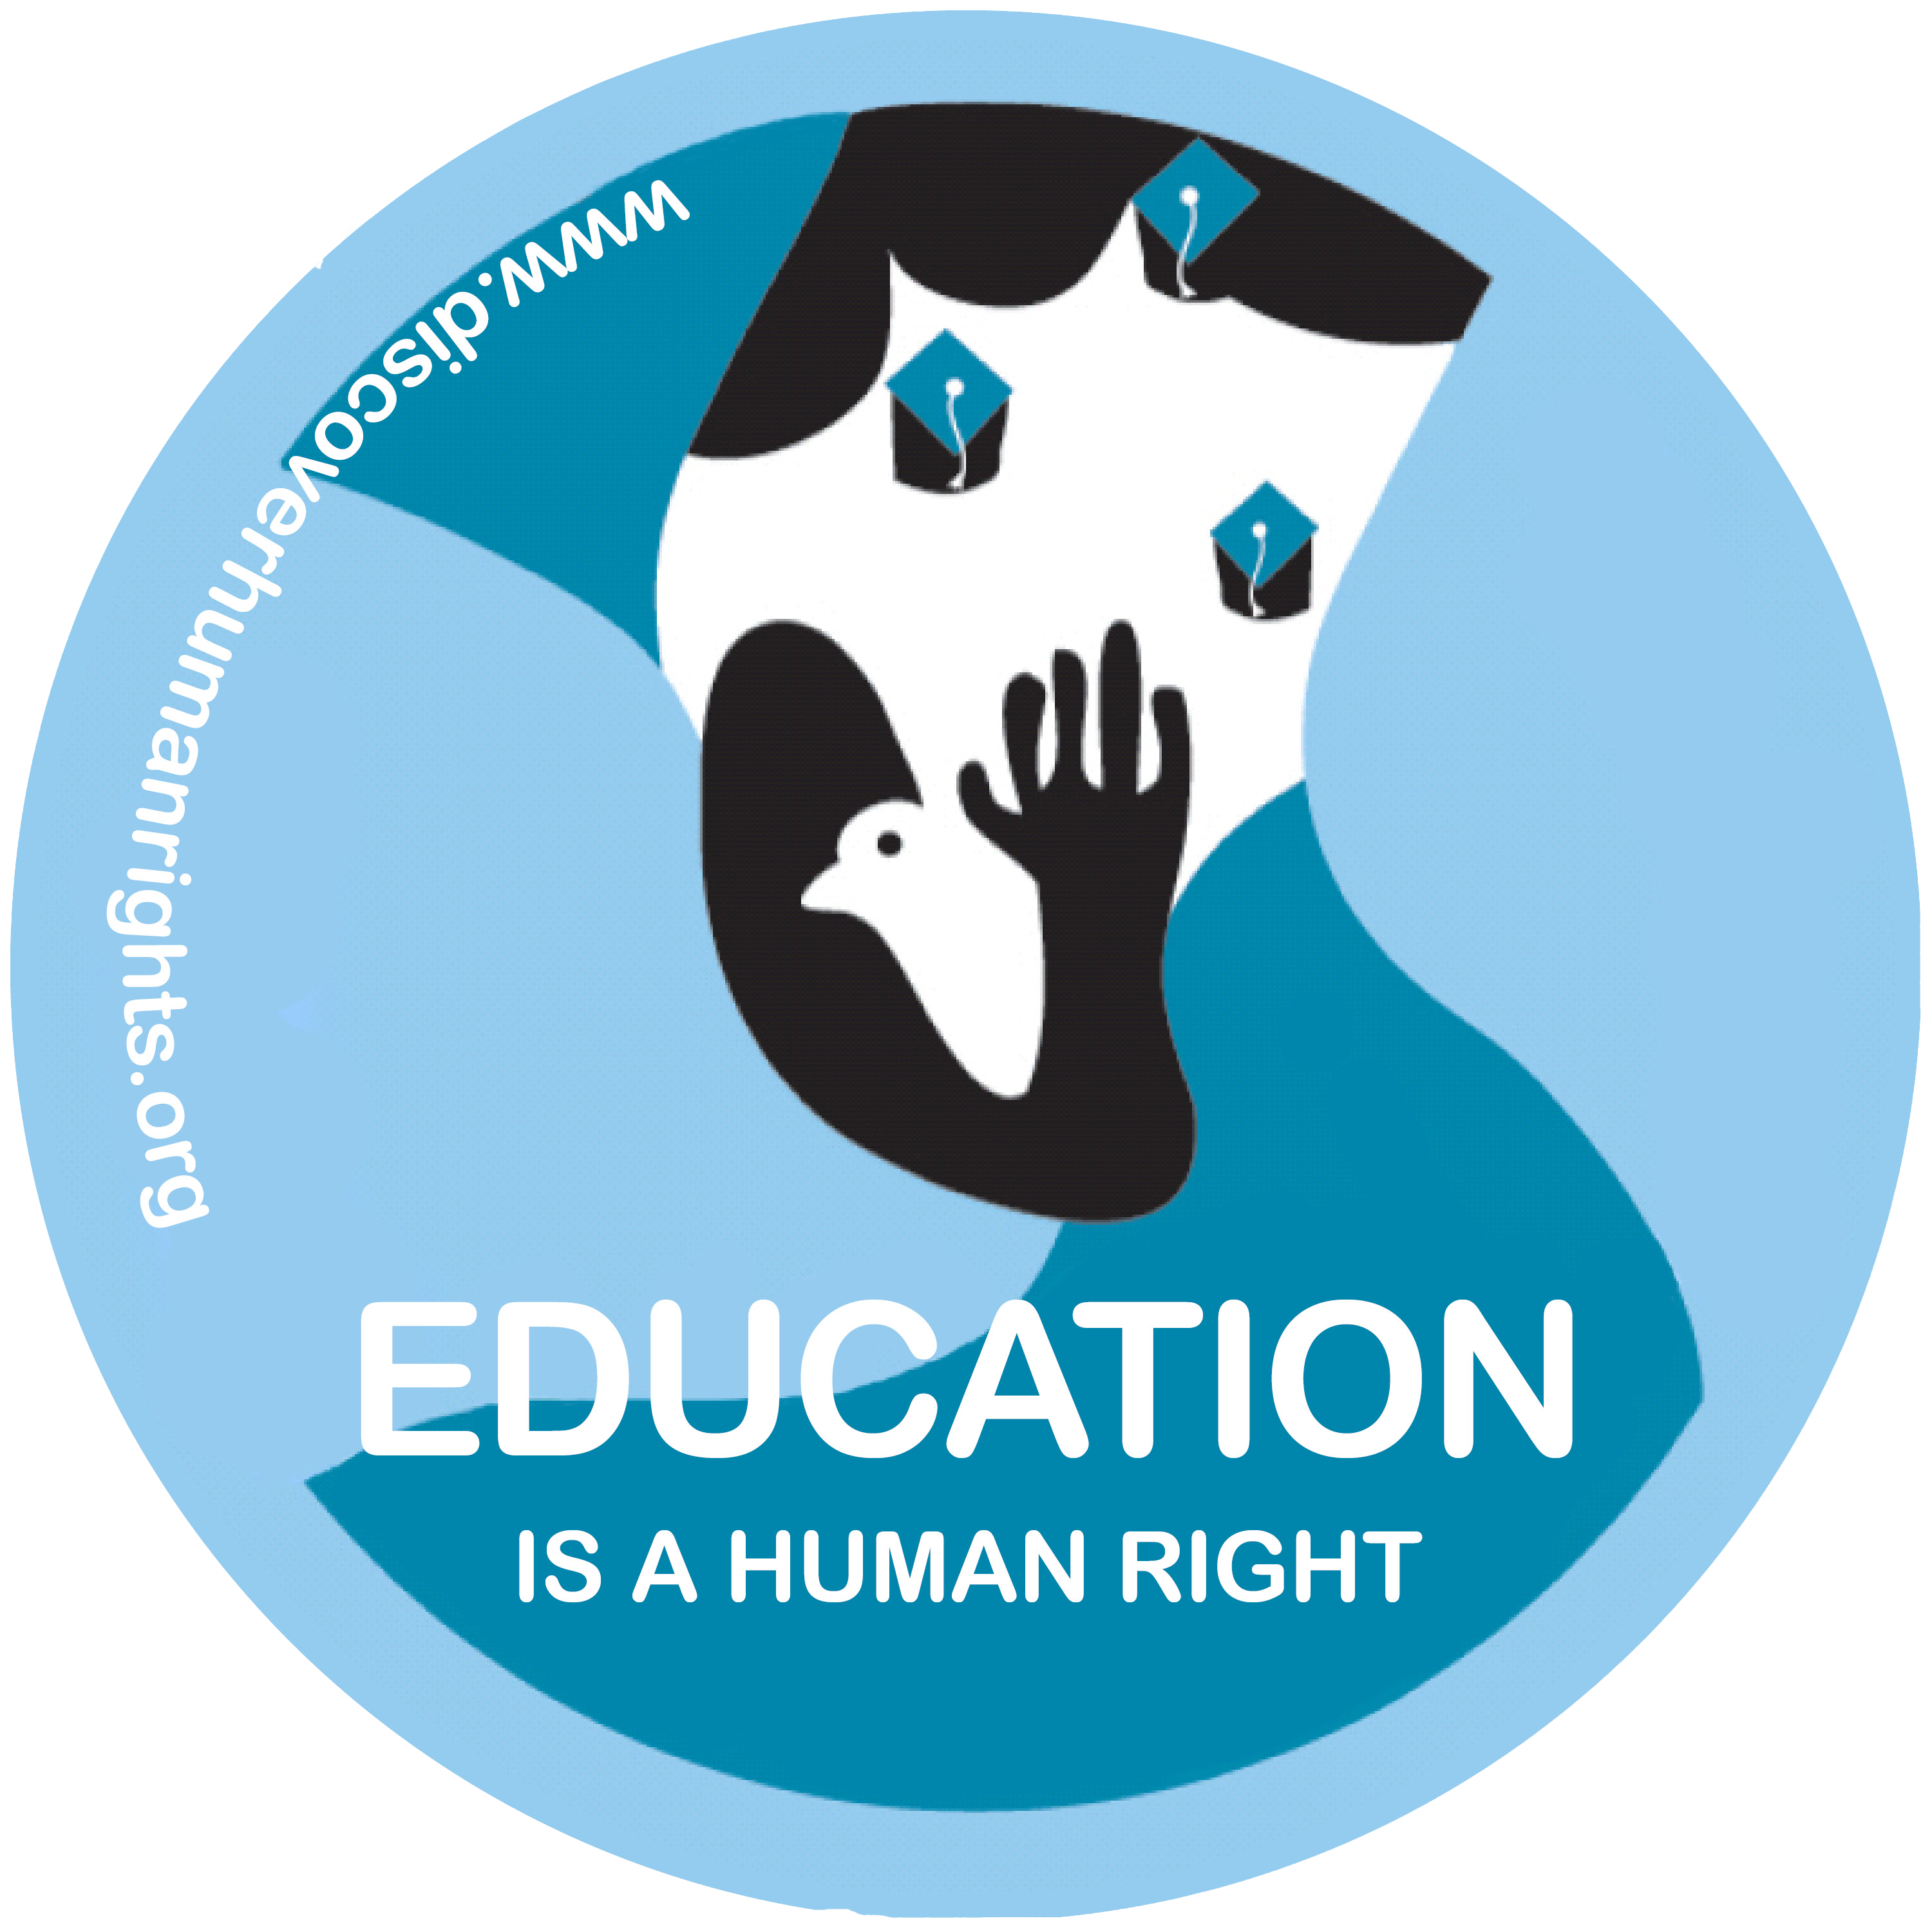 Missions clipart education. Toolkits right to righttoeducationpng